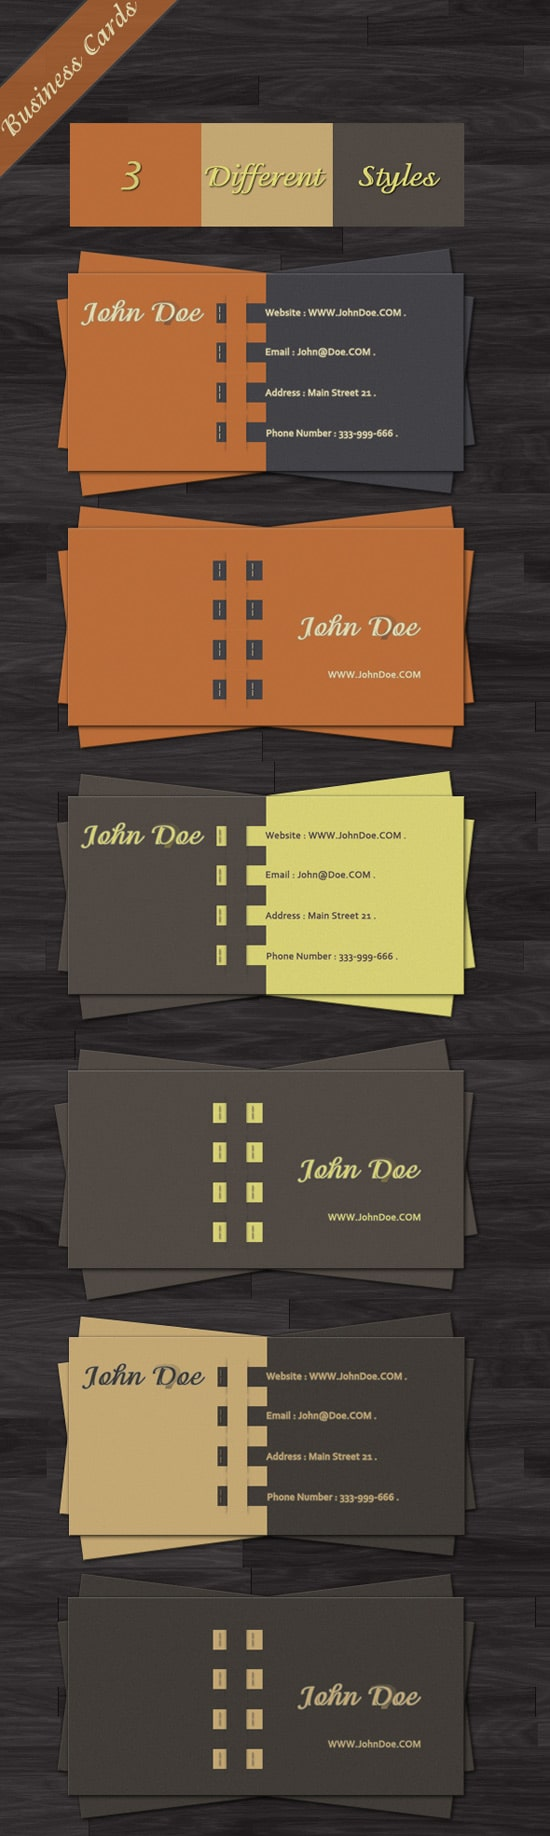 100 free business card templates designrfix business is business free psd vector business card reheart